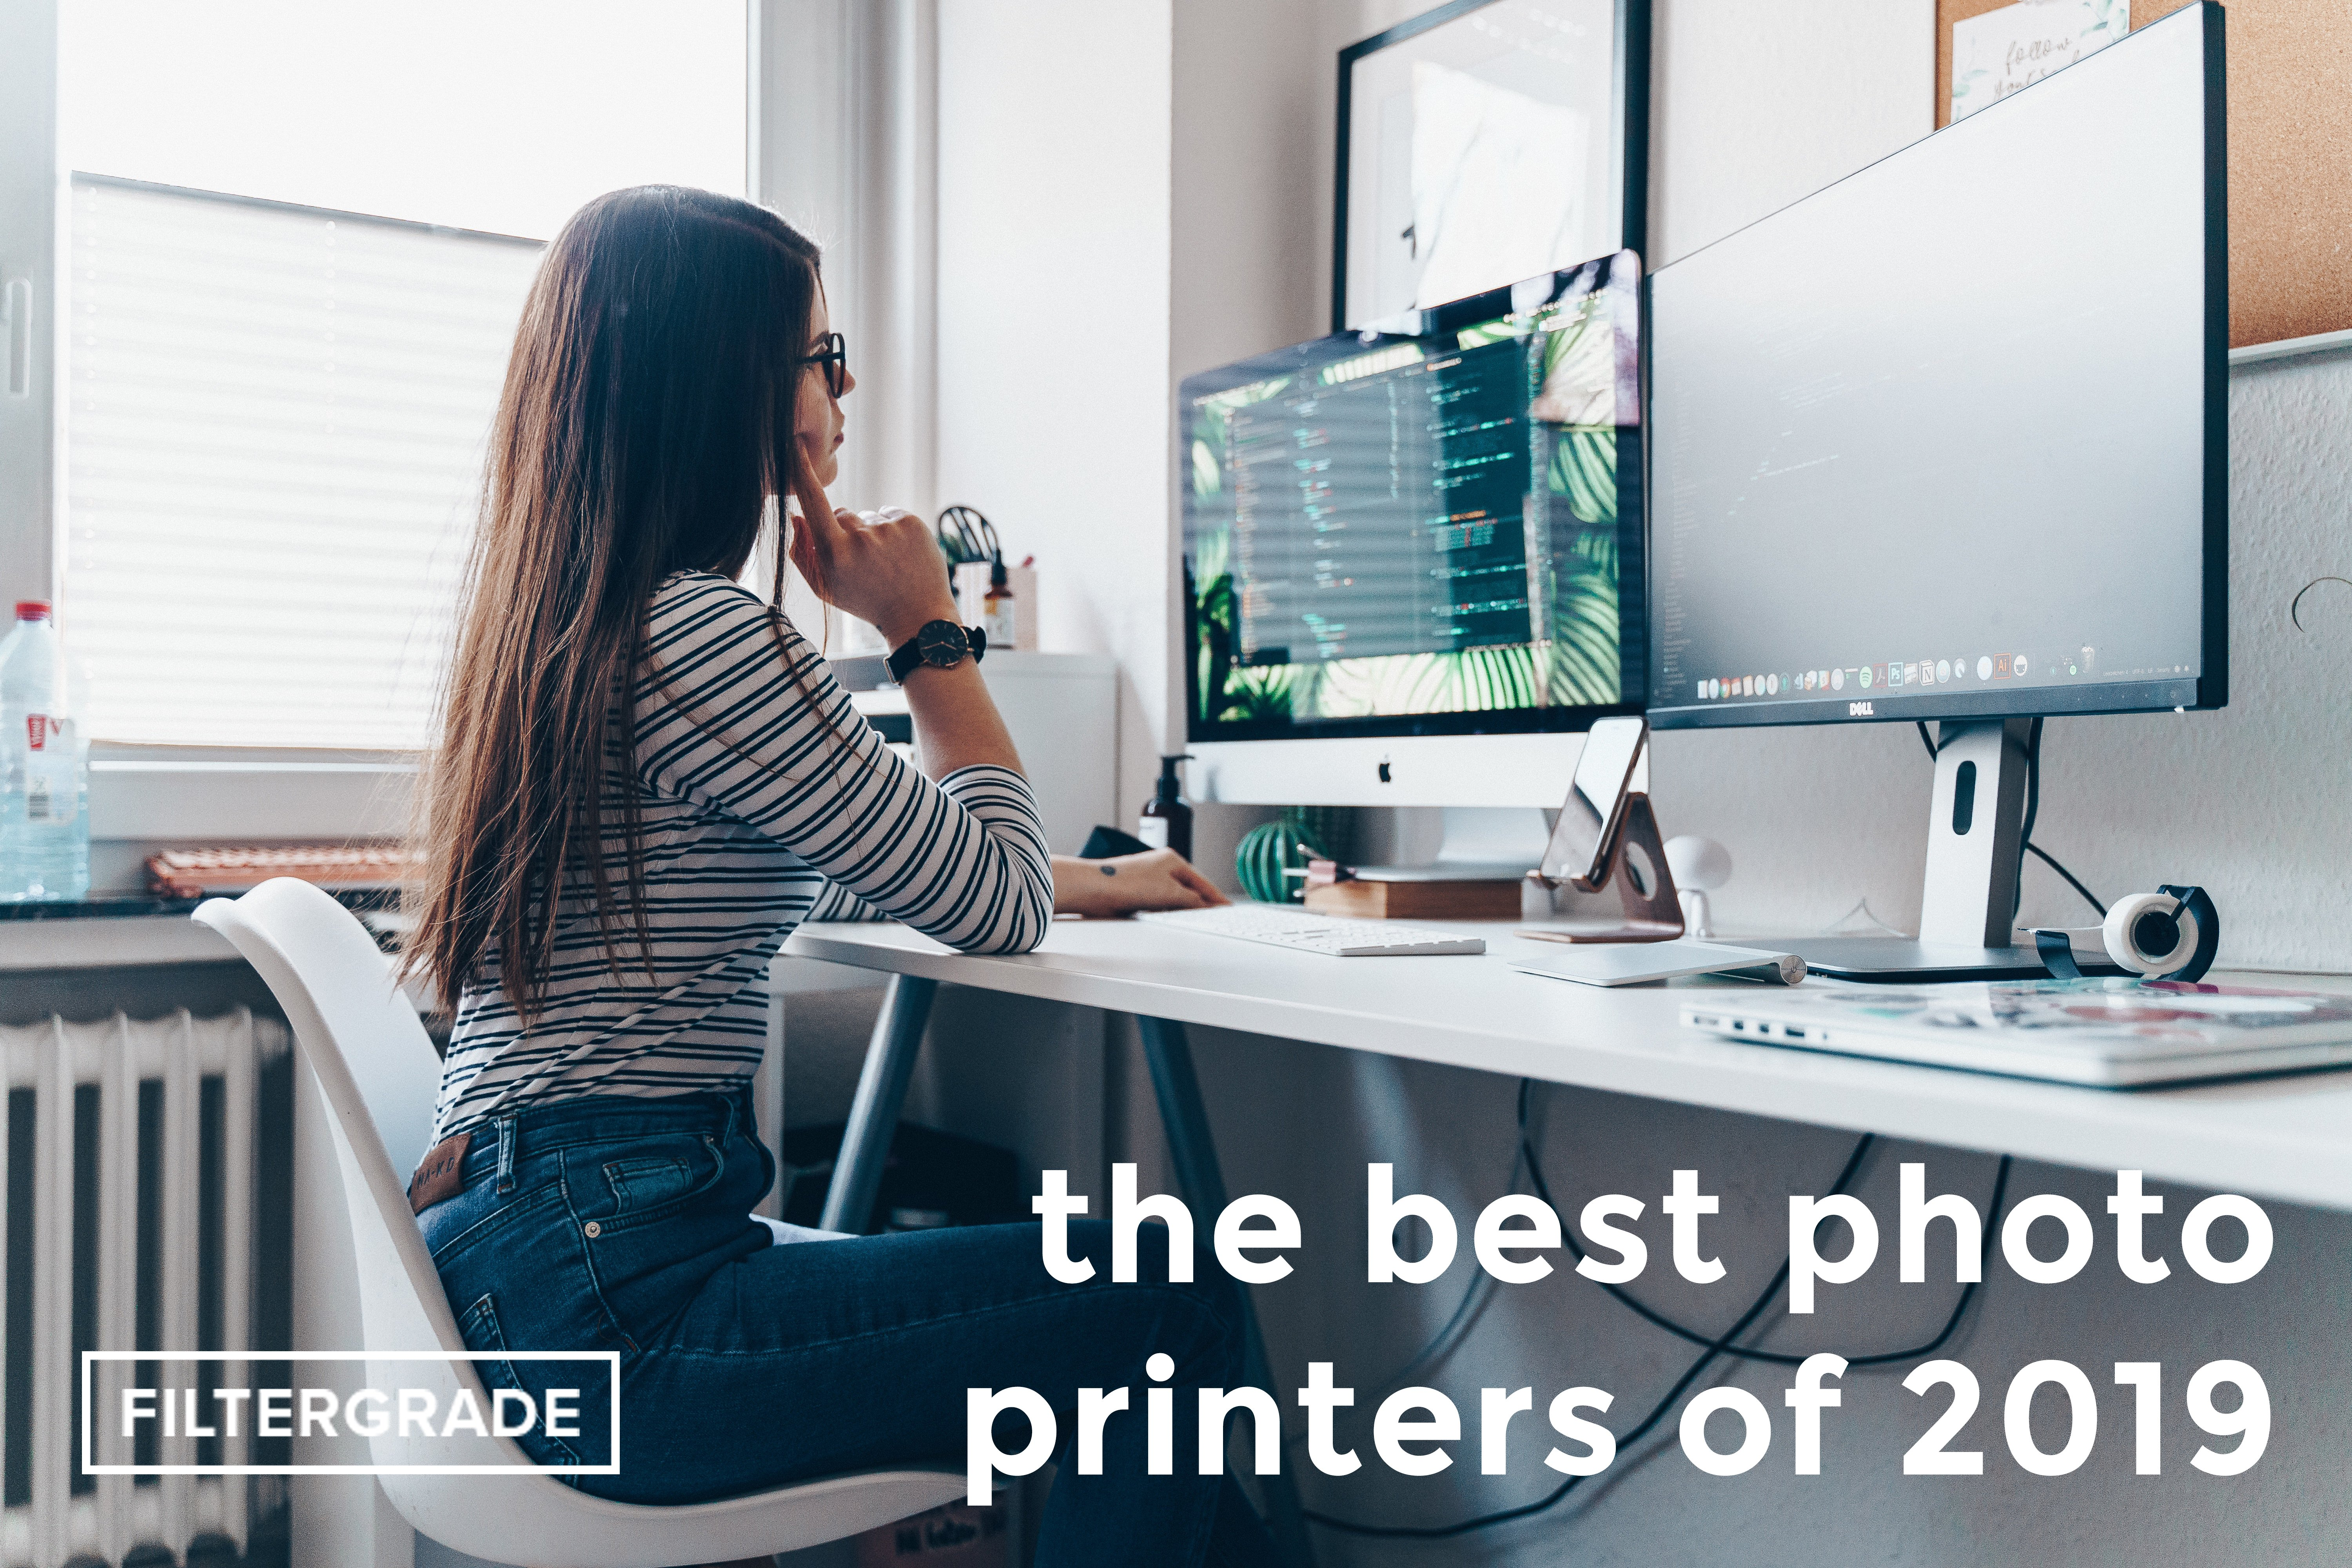 Featured - The Best Photo Printers of 2019 - FilterGrade